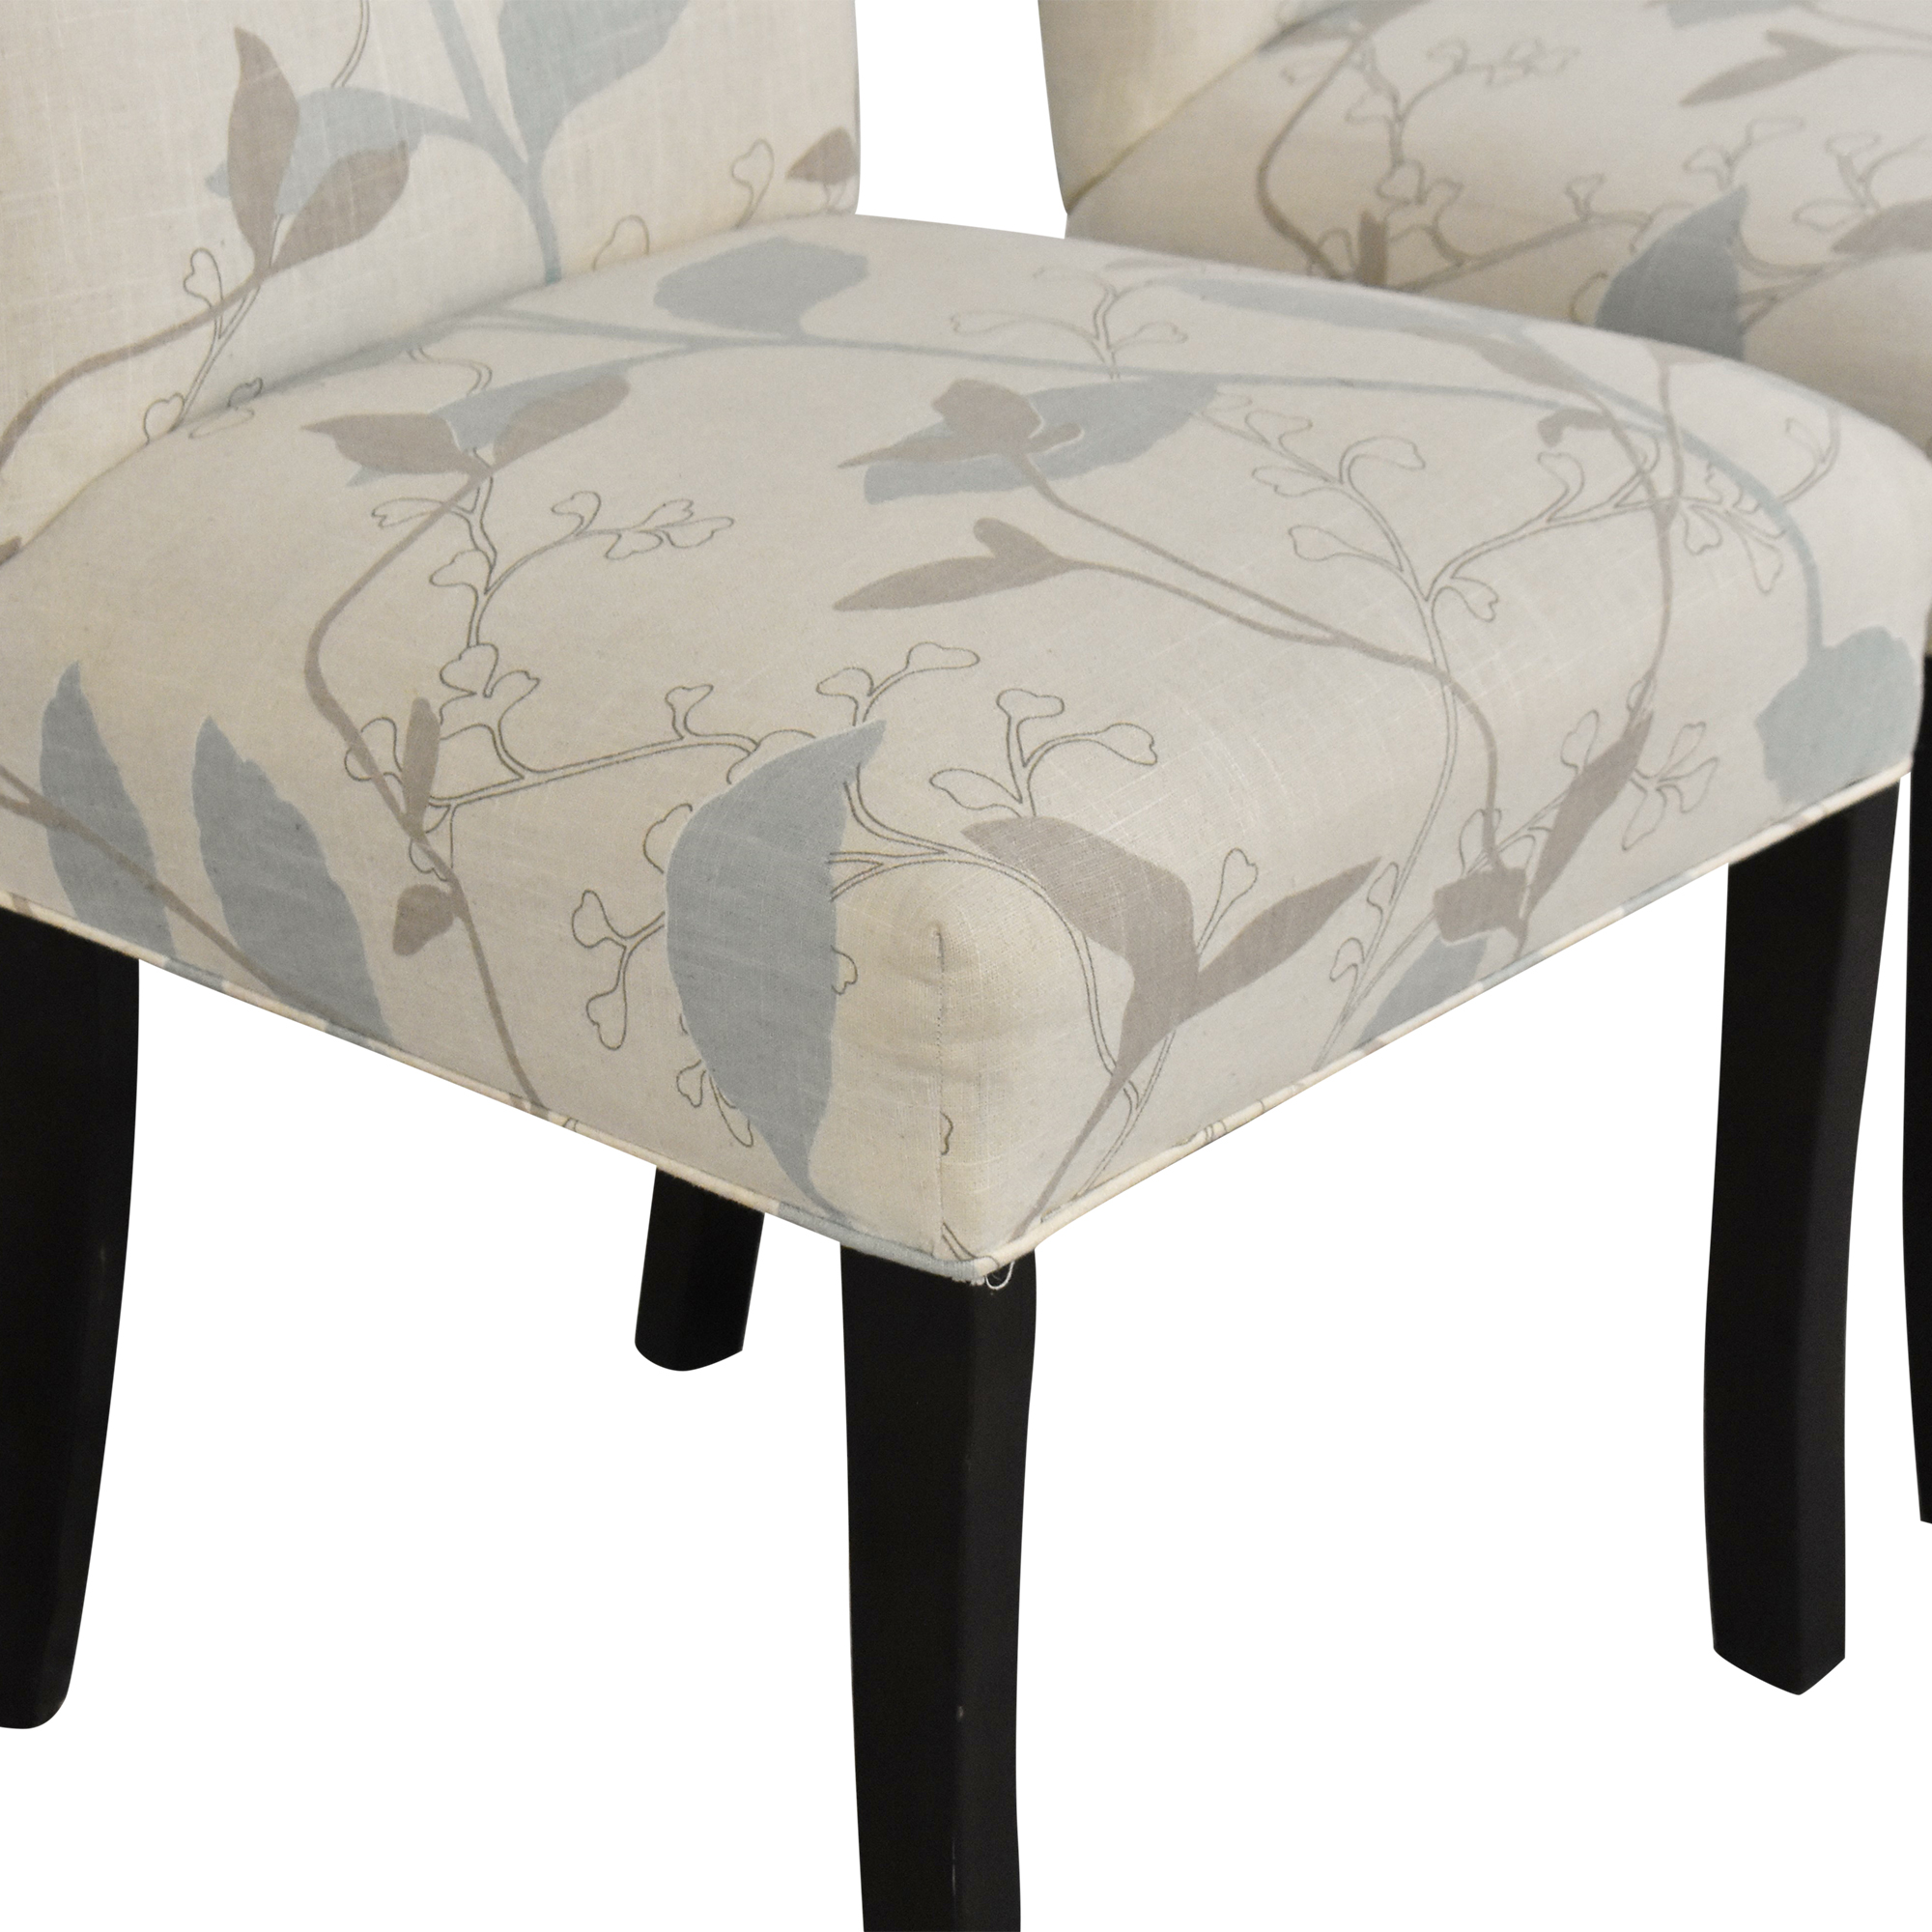 shop Wayfair Sole Designs Upholstered Dining Chairs Wayfair Chairs